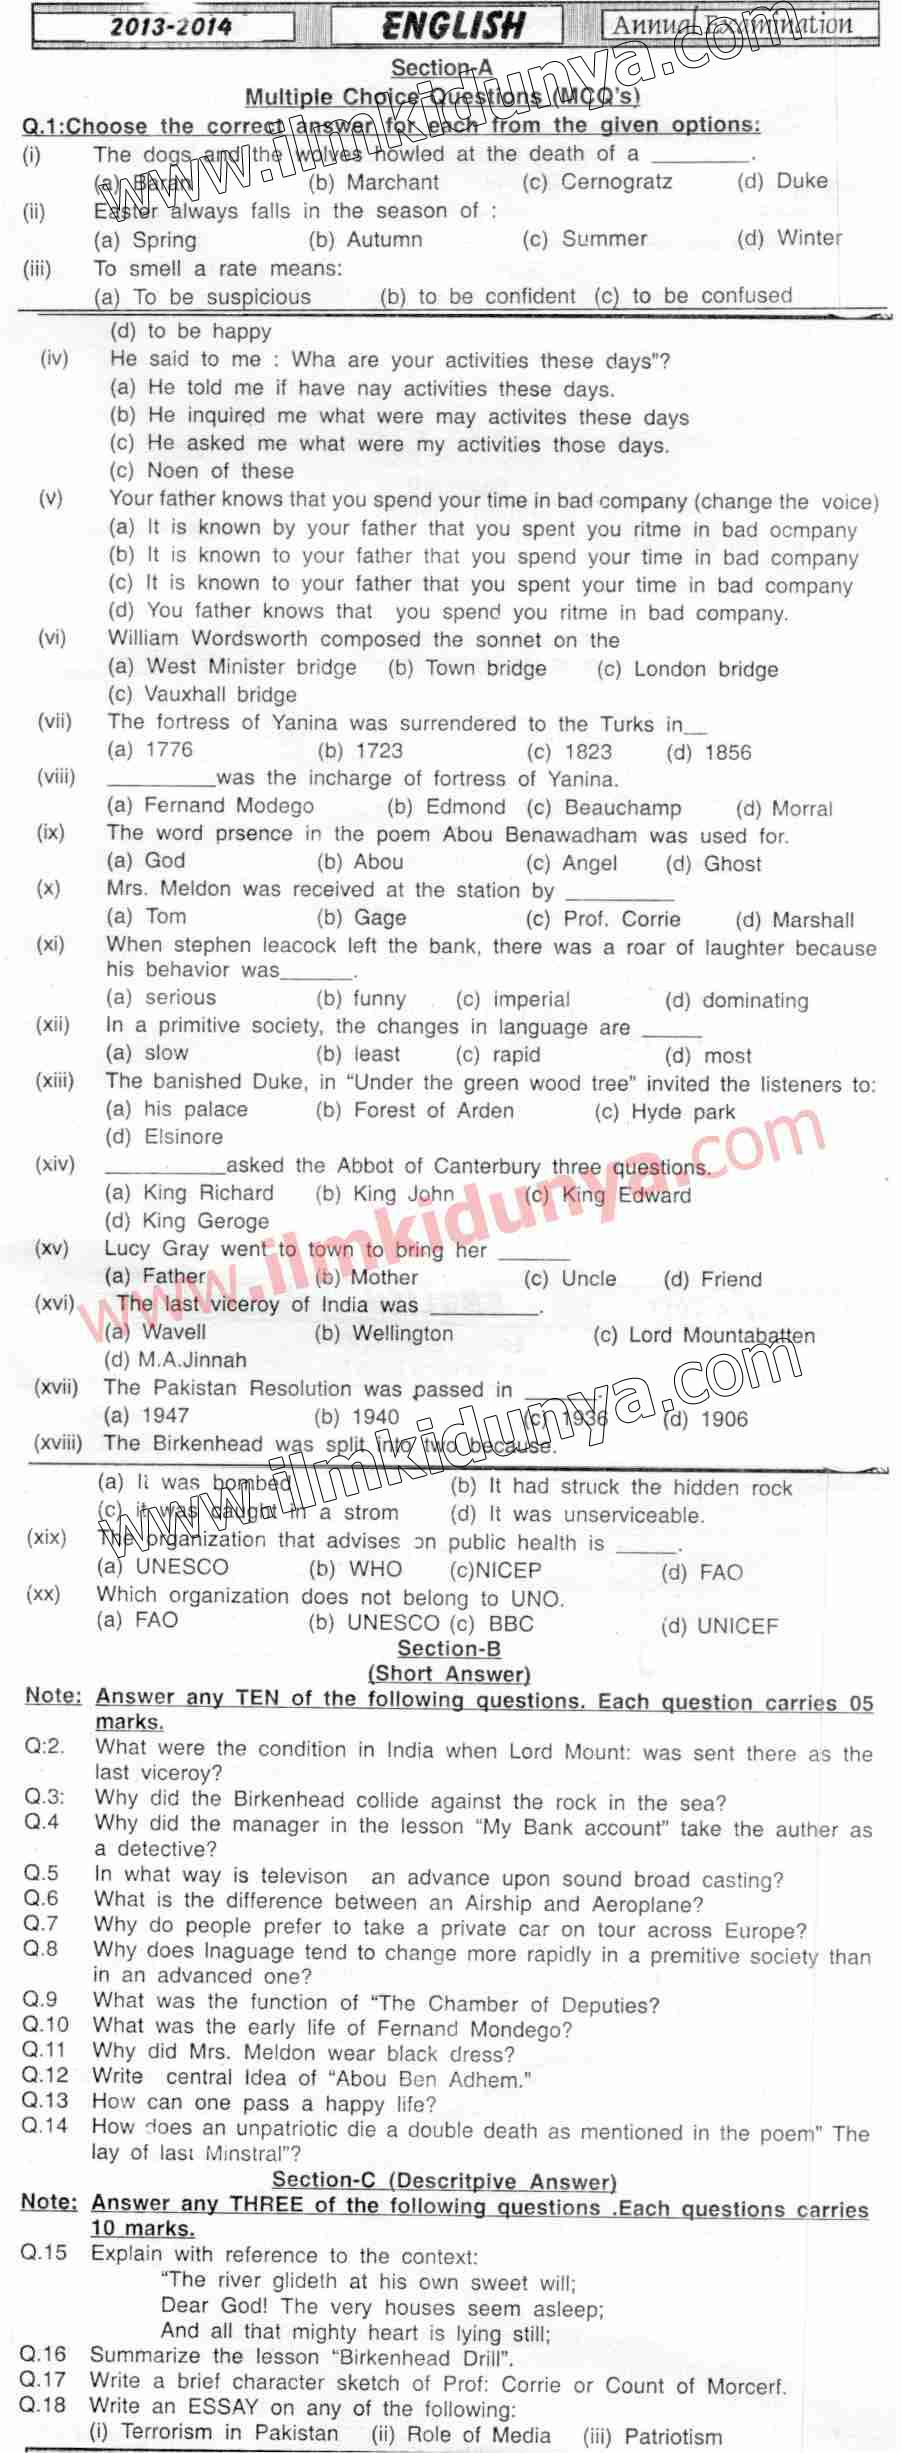 Past Papers 2014 Hyderabad Board Inter Part 1 English